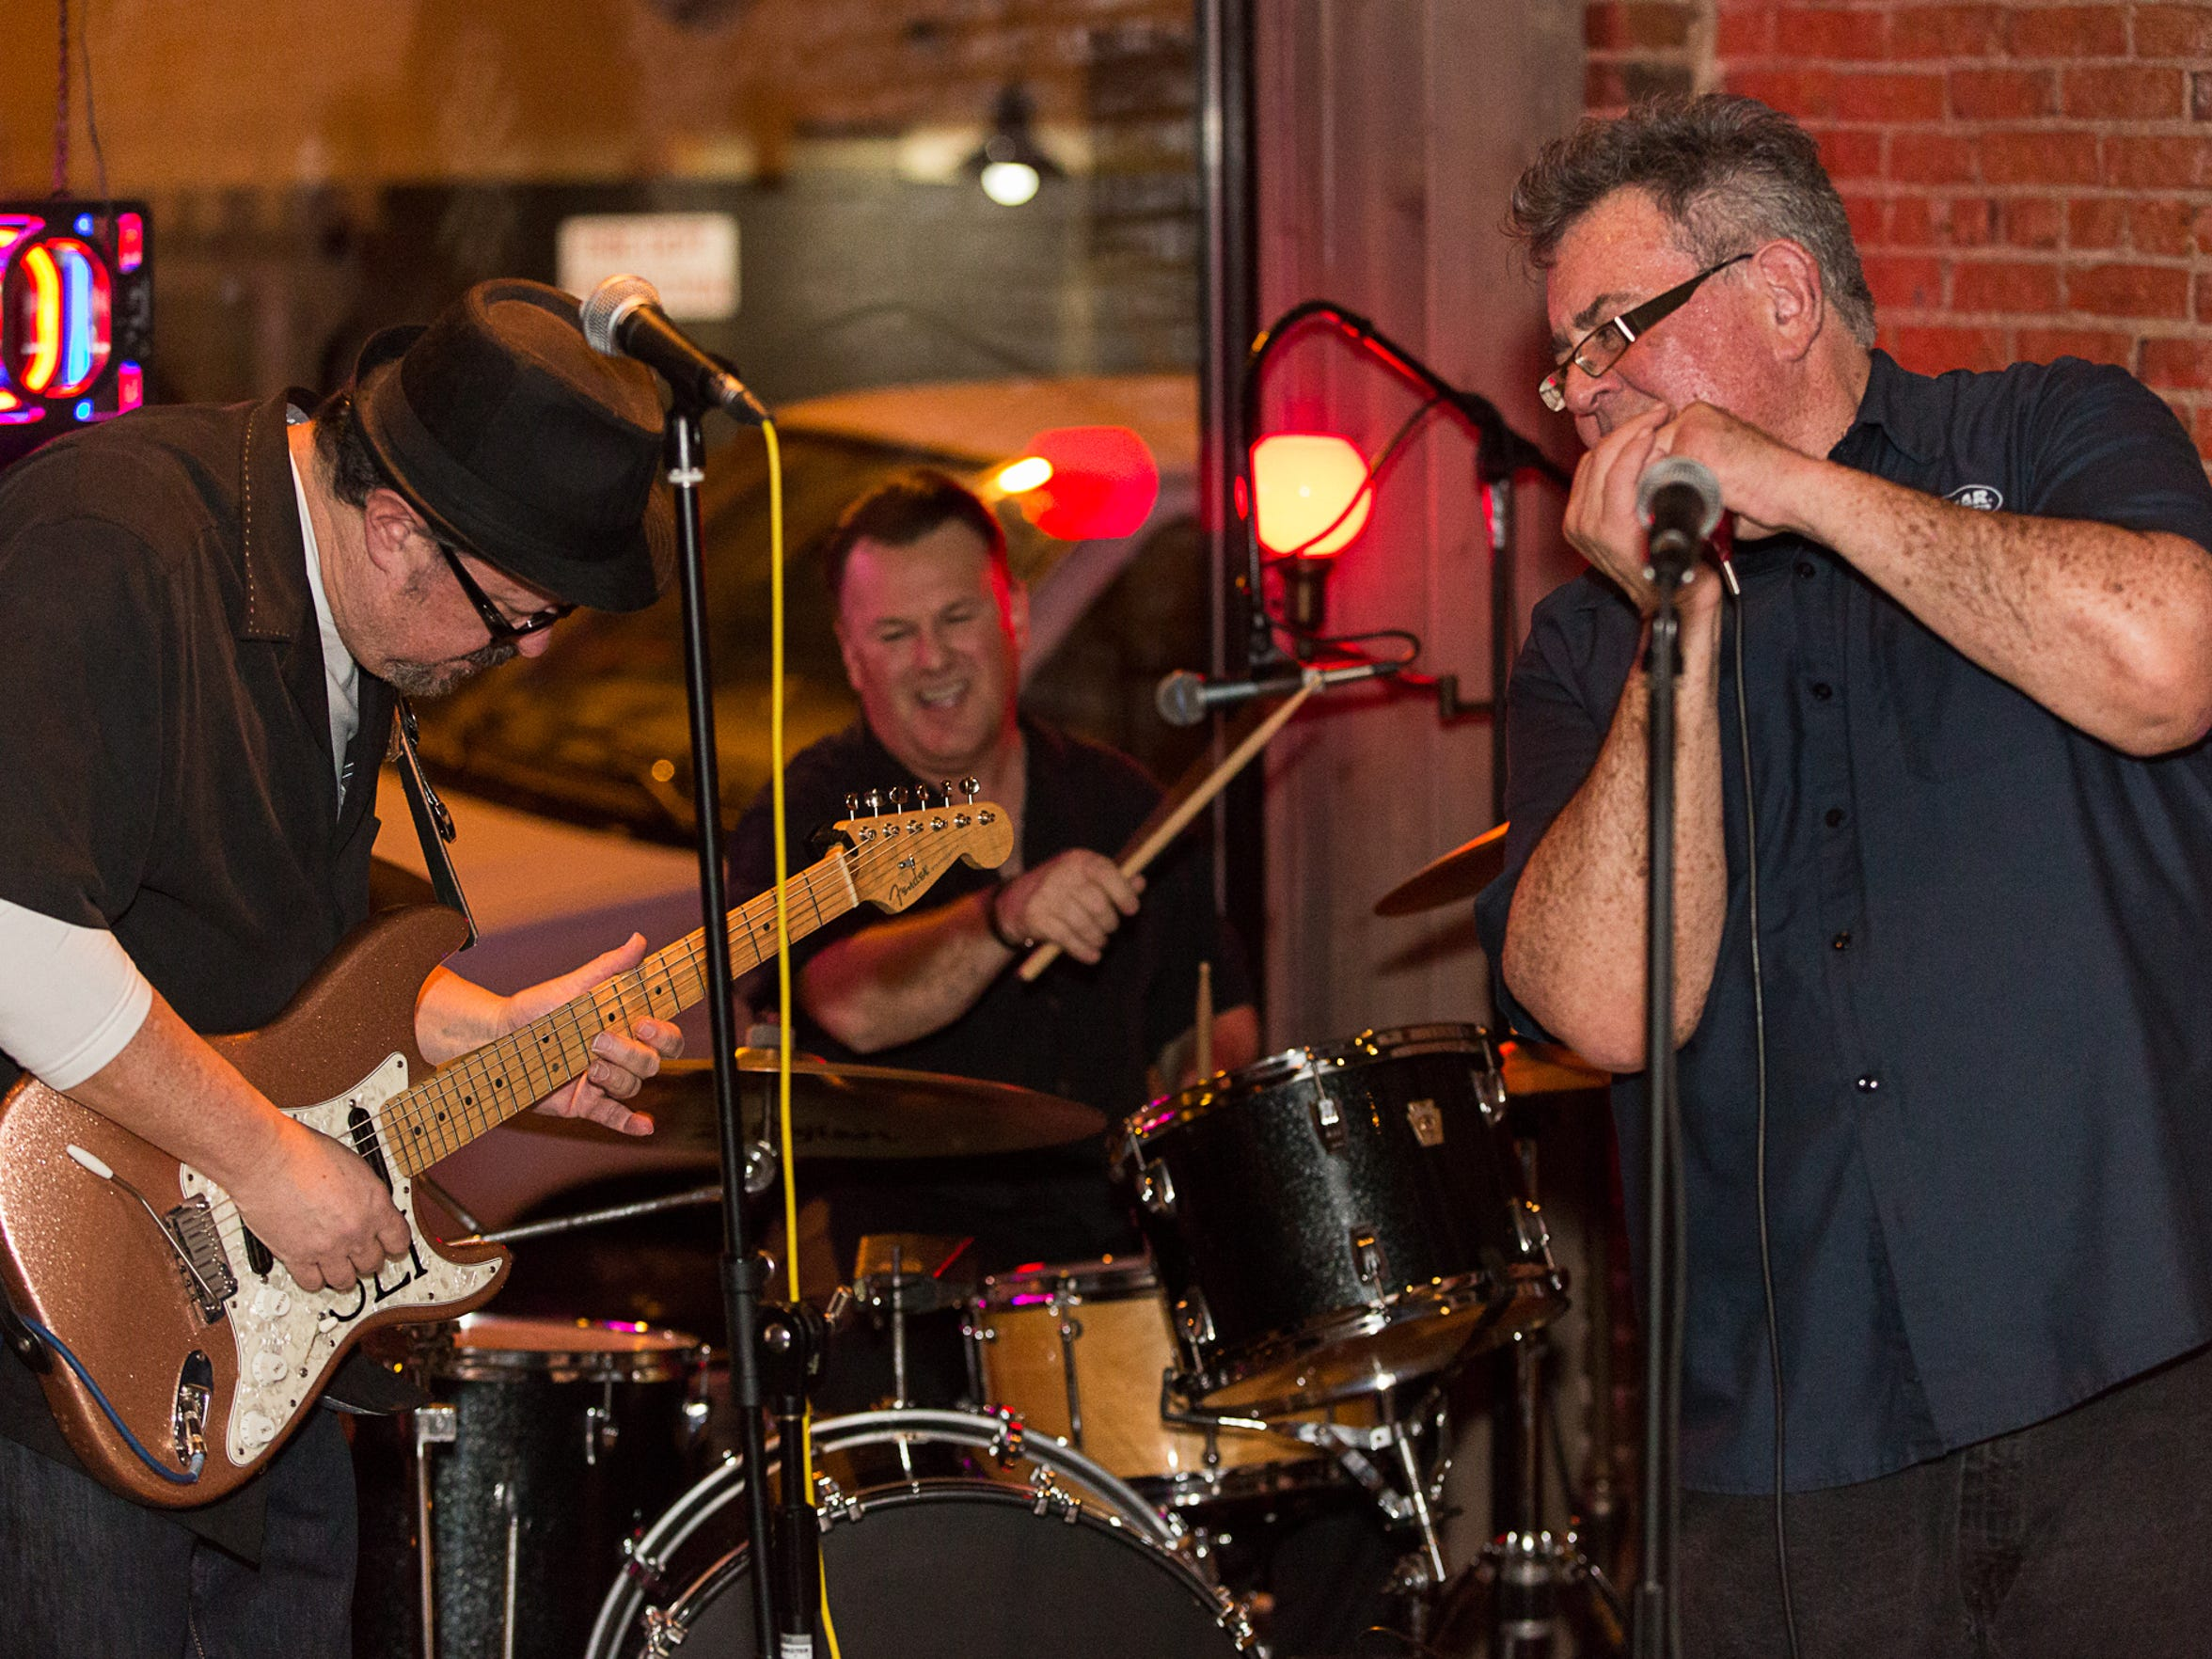 Dr. Harmonica / Mark Kenneally and Rockett 88 are one of the groups playing Vet Fest.